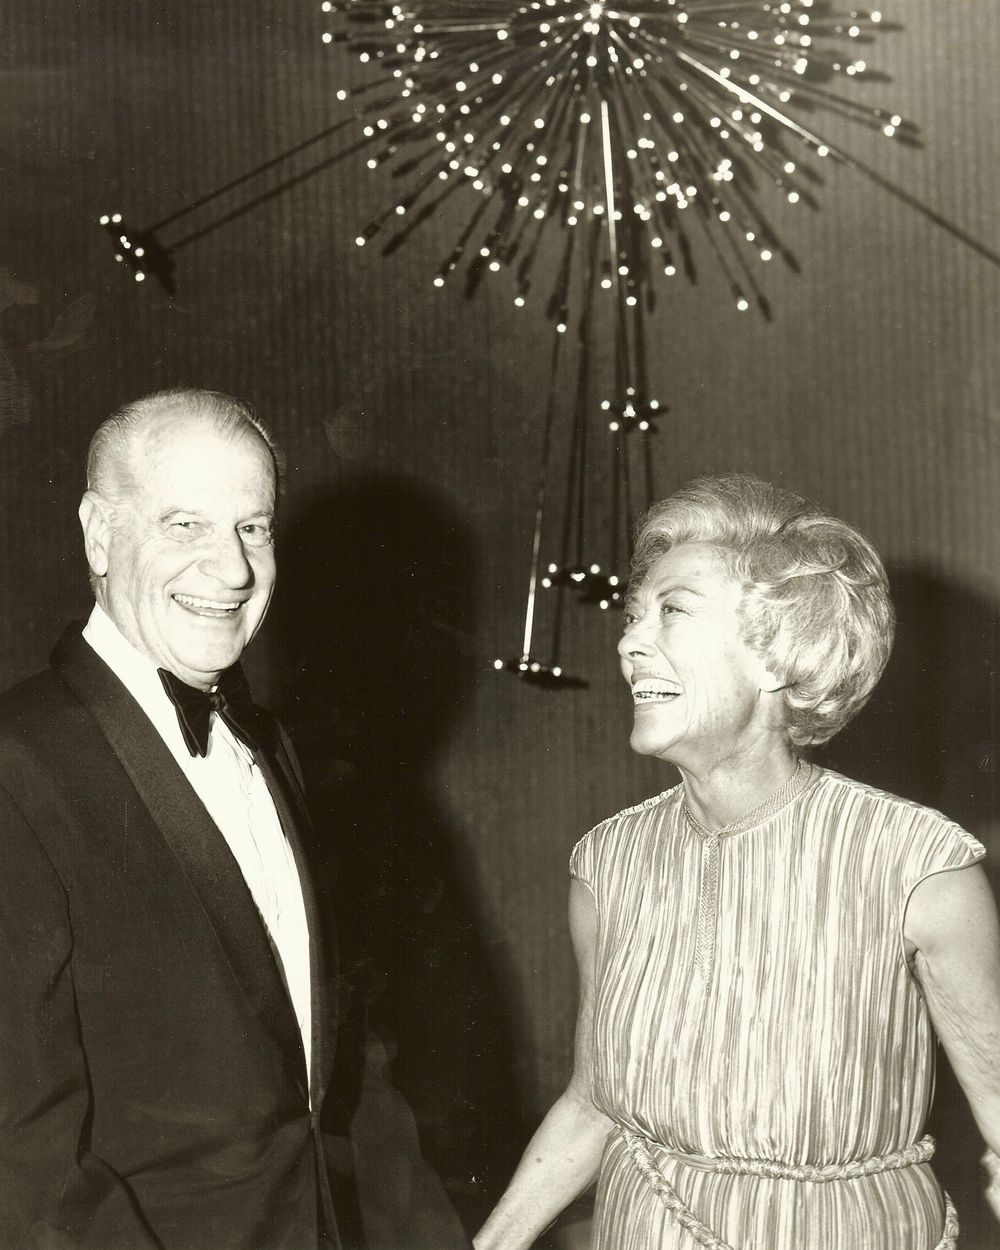 Stew and Marjorie enjoy an evening at the Palm Springs Art Museum